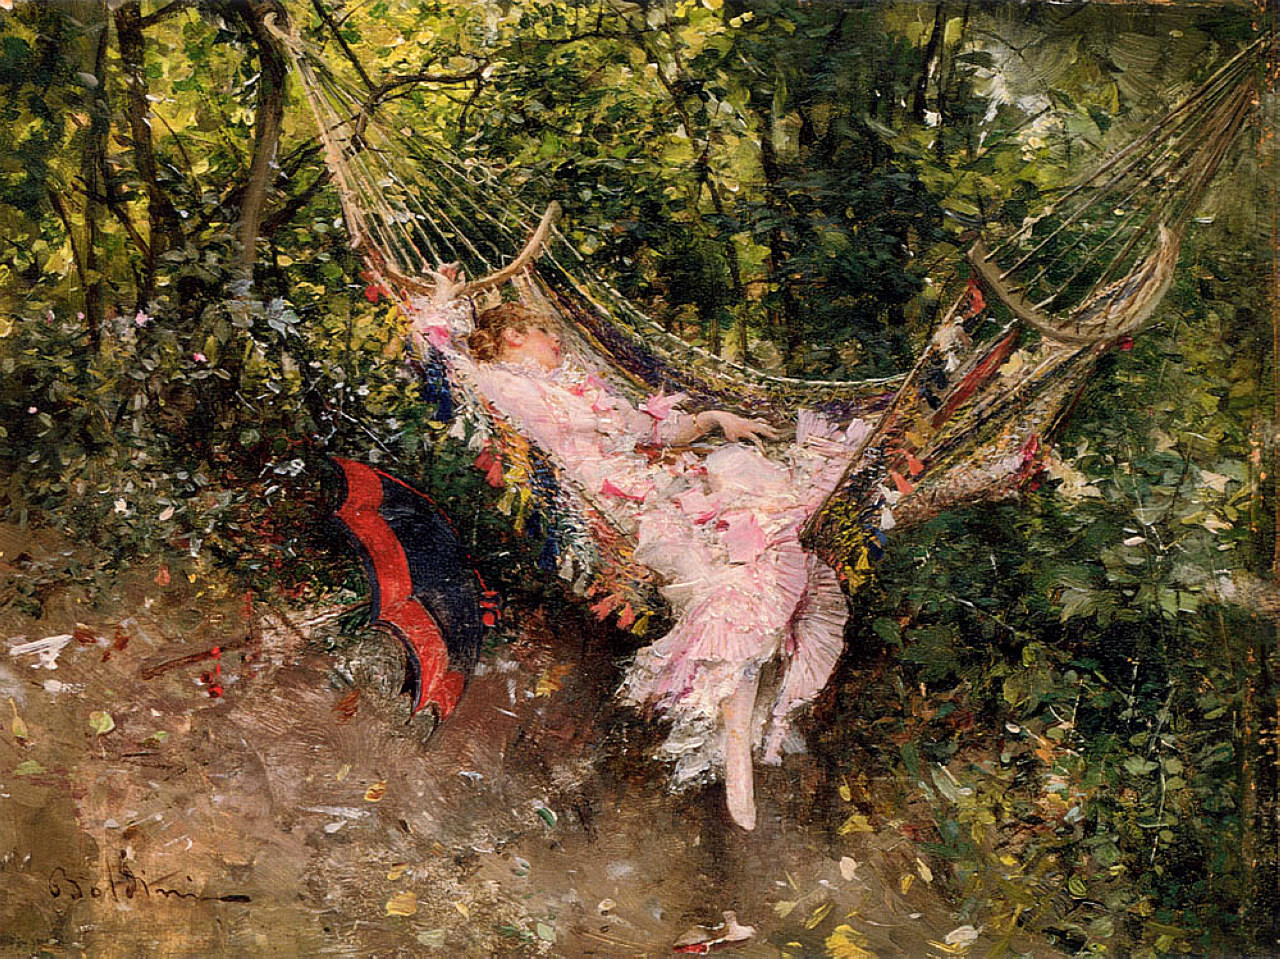 http://upload.wikimedia.org/wikipedia/commons/6/6f/Giovanni_Boldini_The_Hammock.jpg